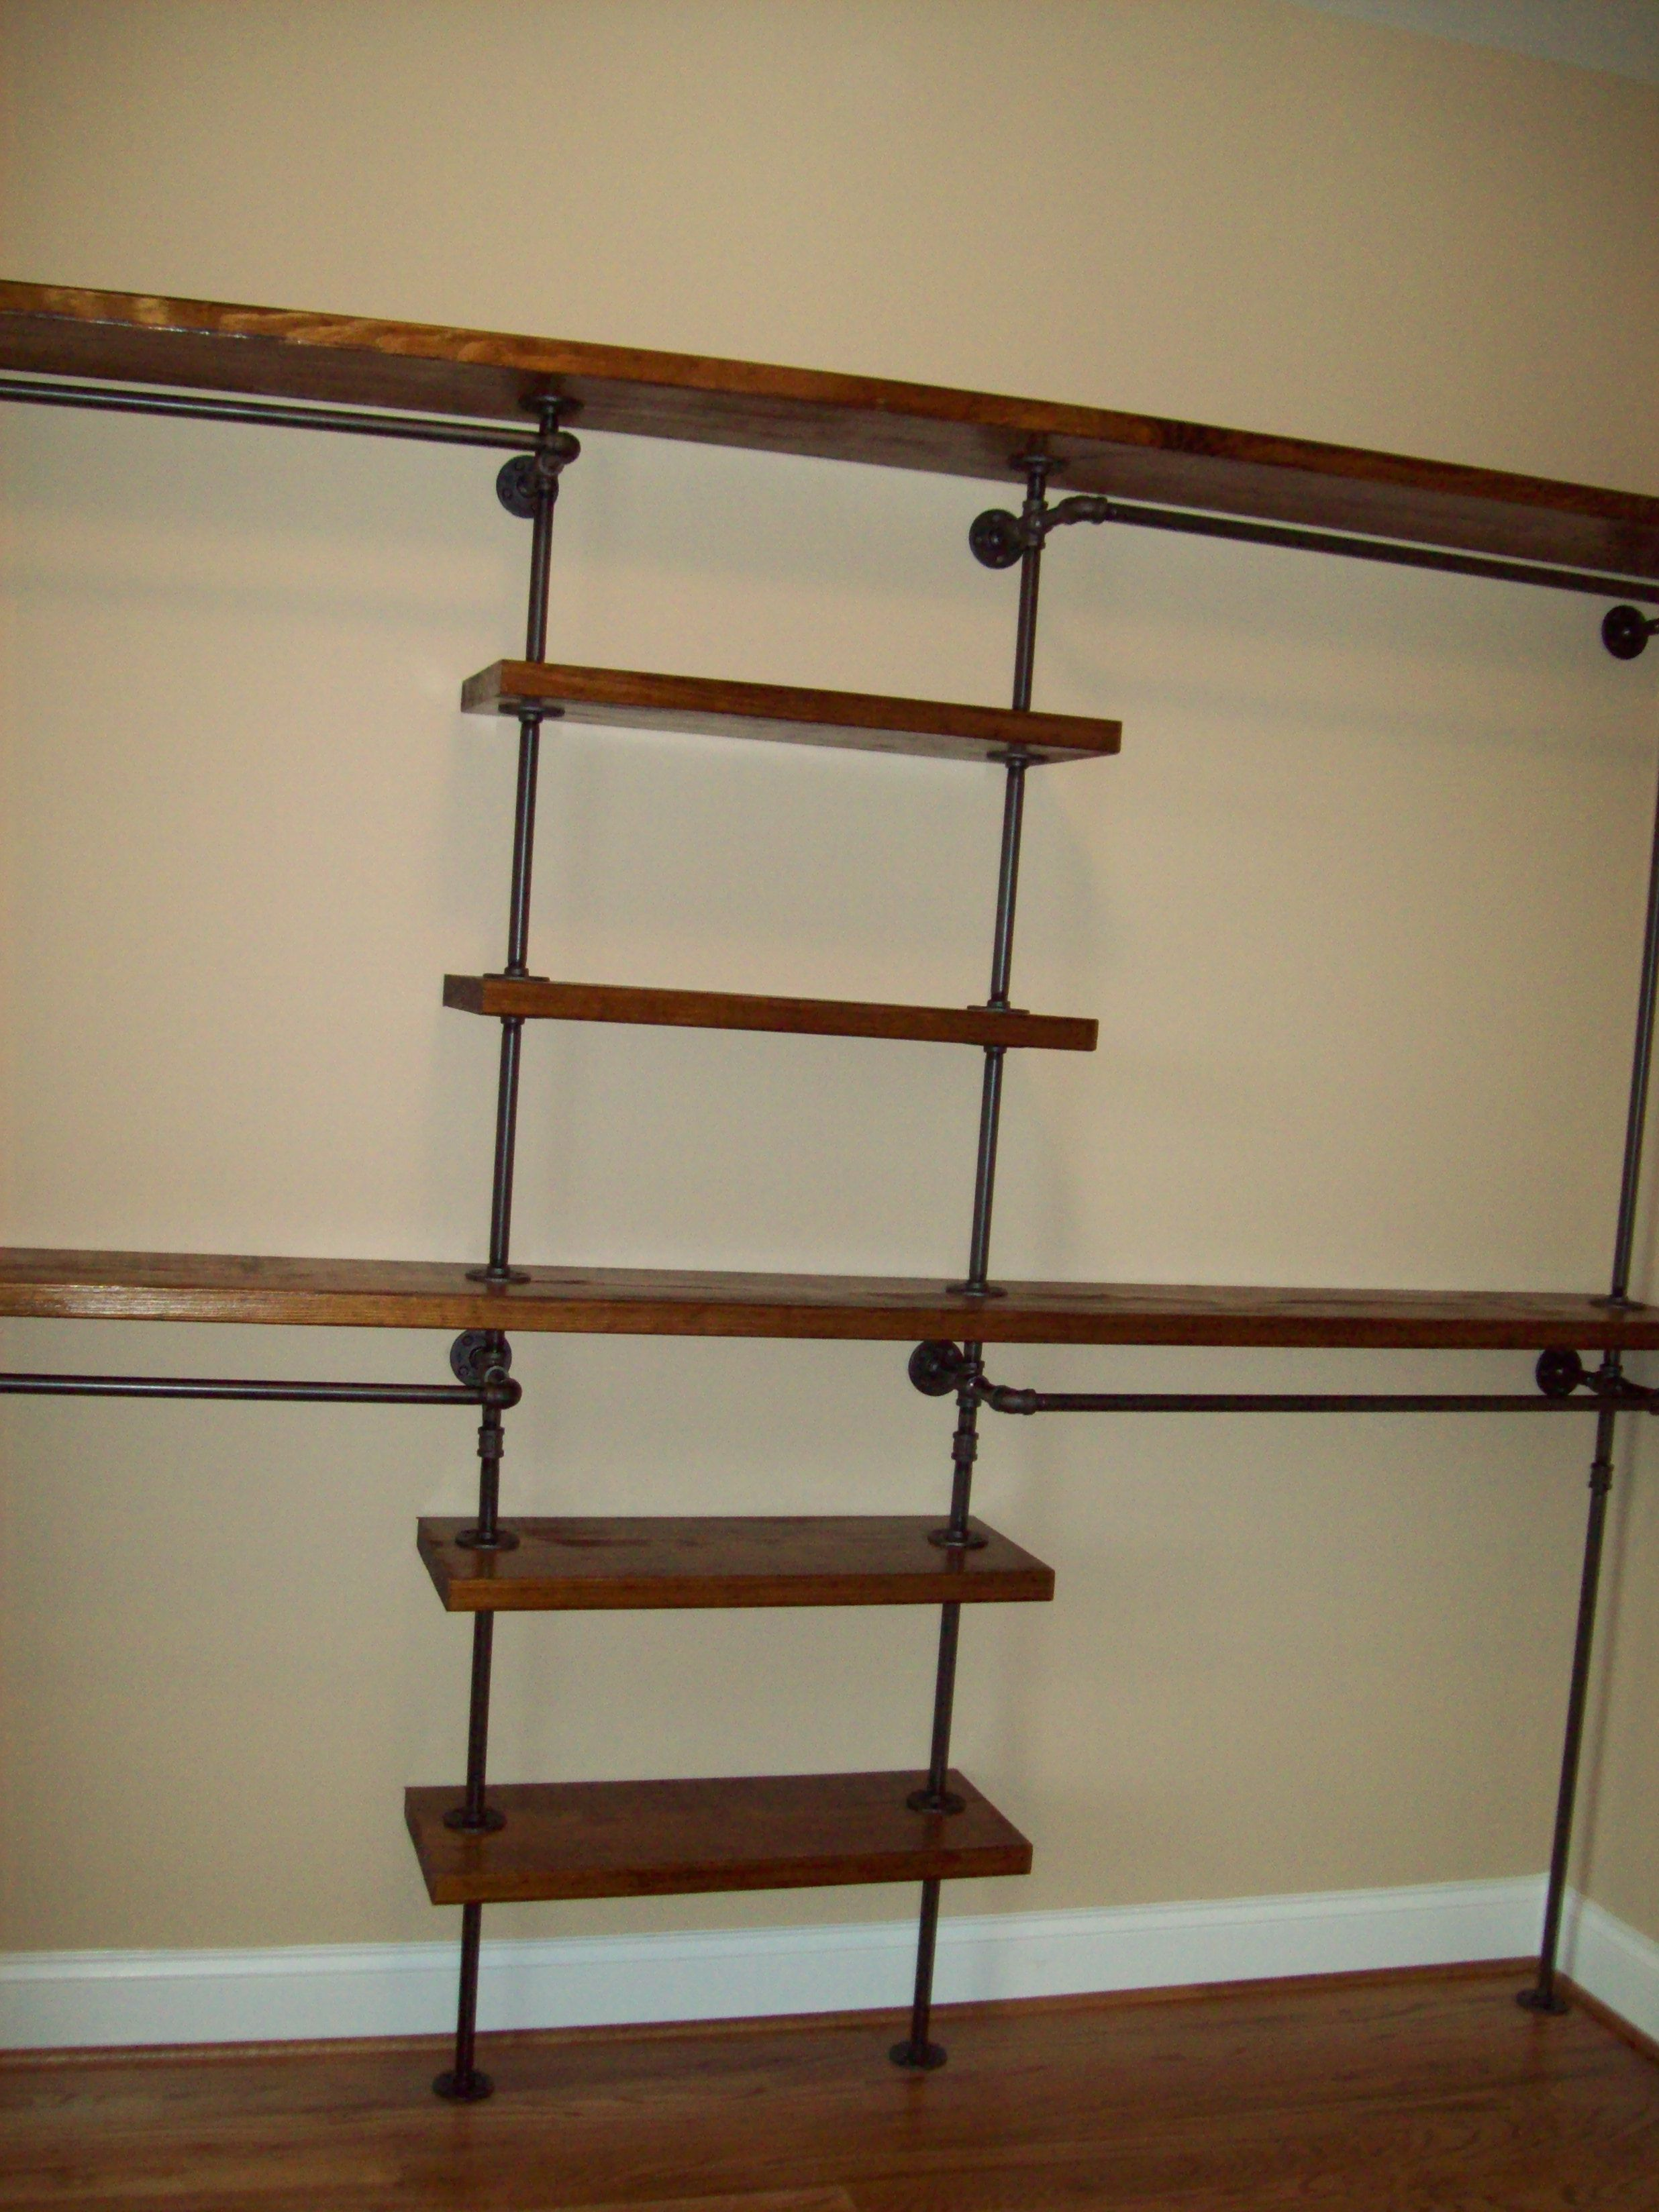 Black Pipe Closet | DIY PROJECTS | Pinterest | Pipe closet ...